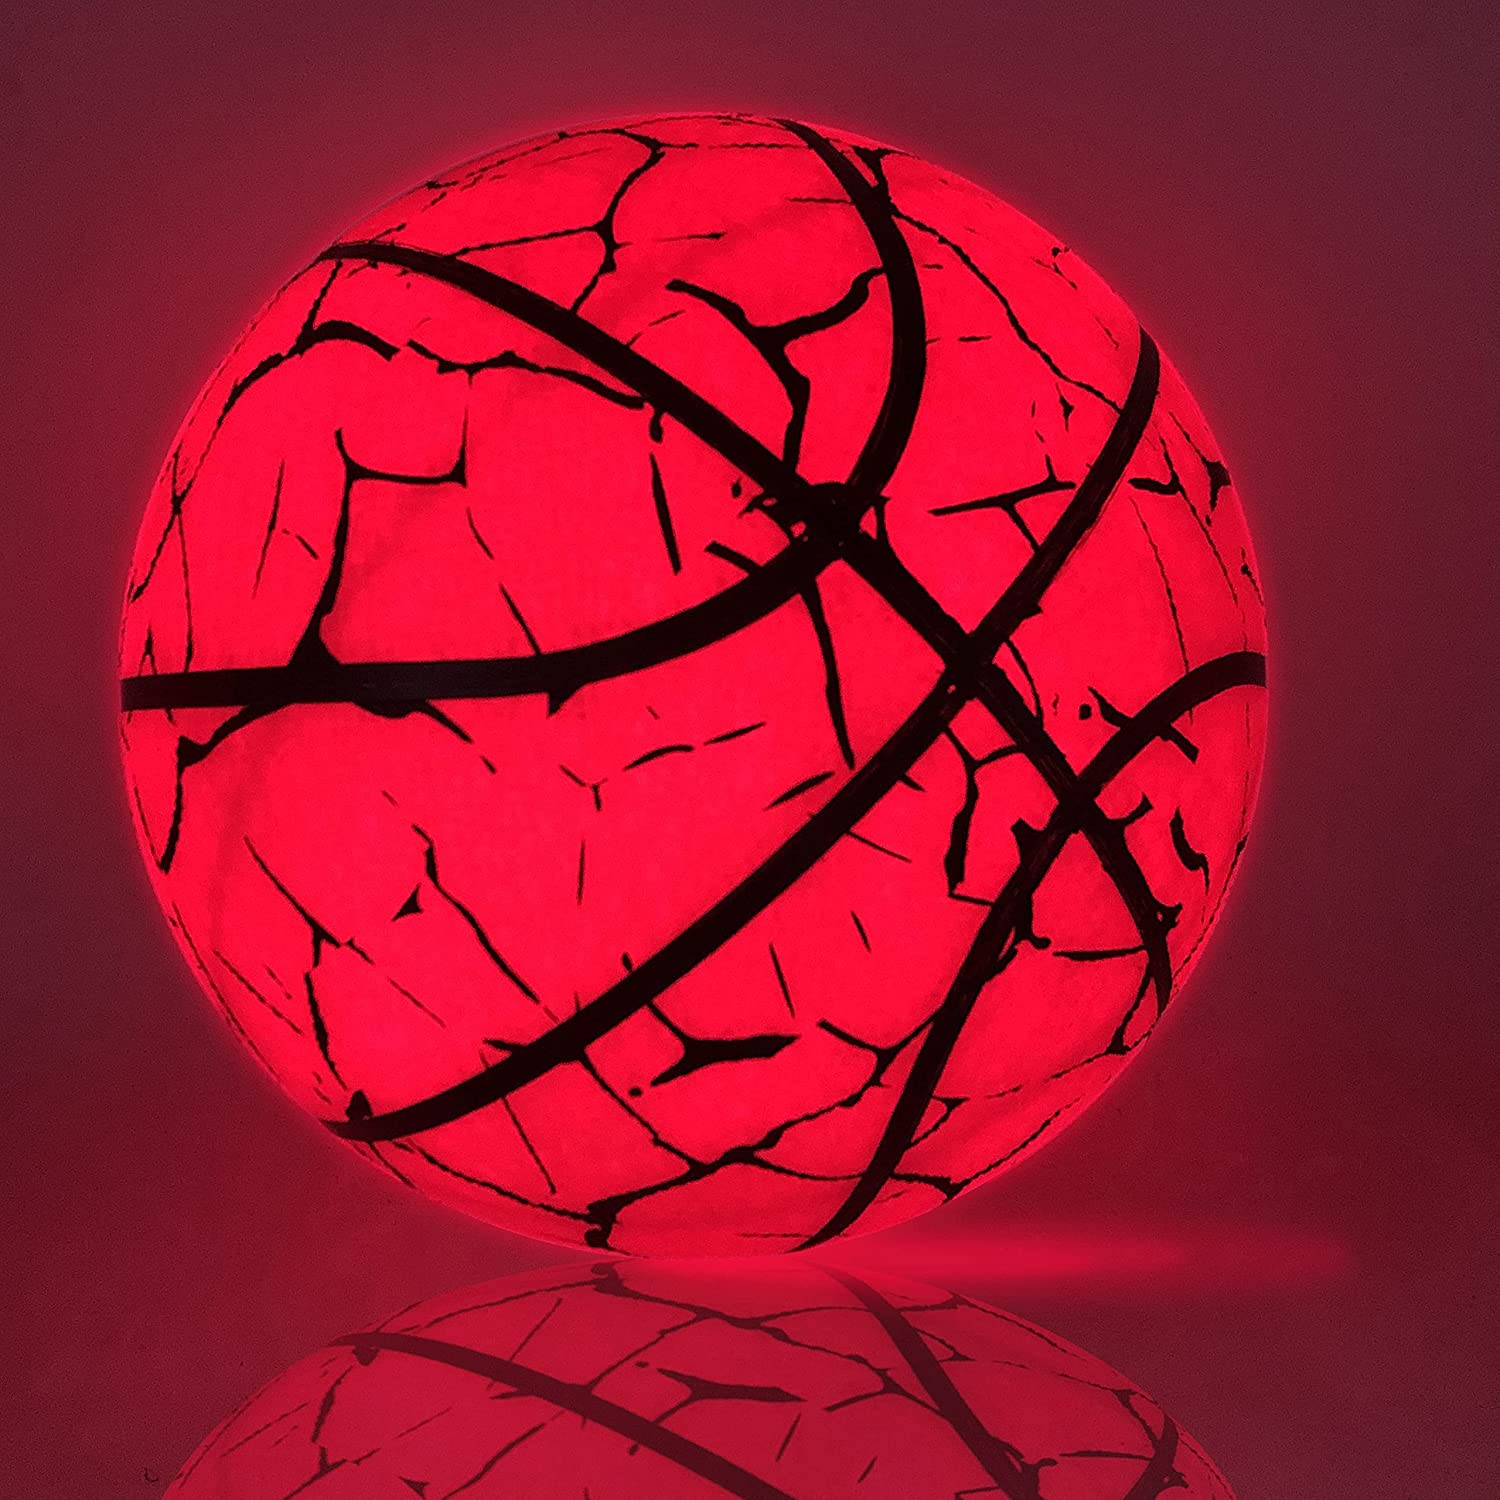 Sale special price BOGUAN Holographic Reflective Glowing Basketball-Glow in Dar Long-awaited The